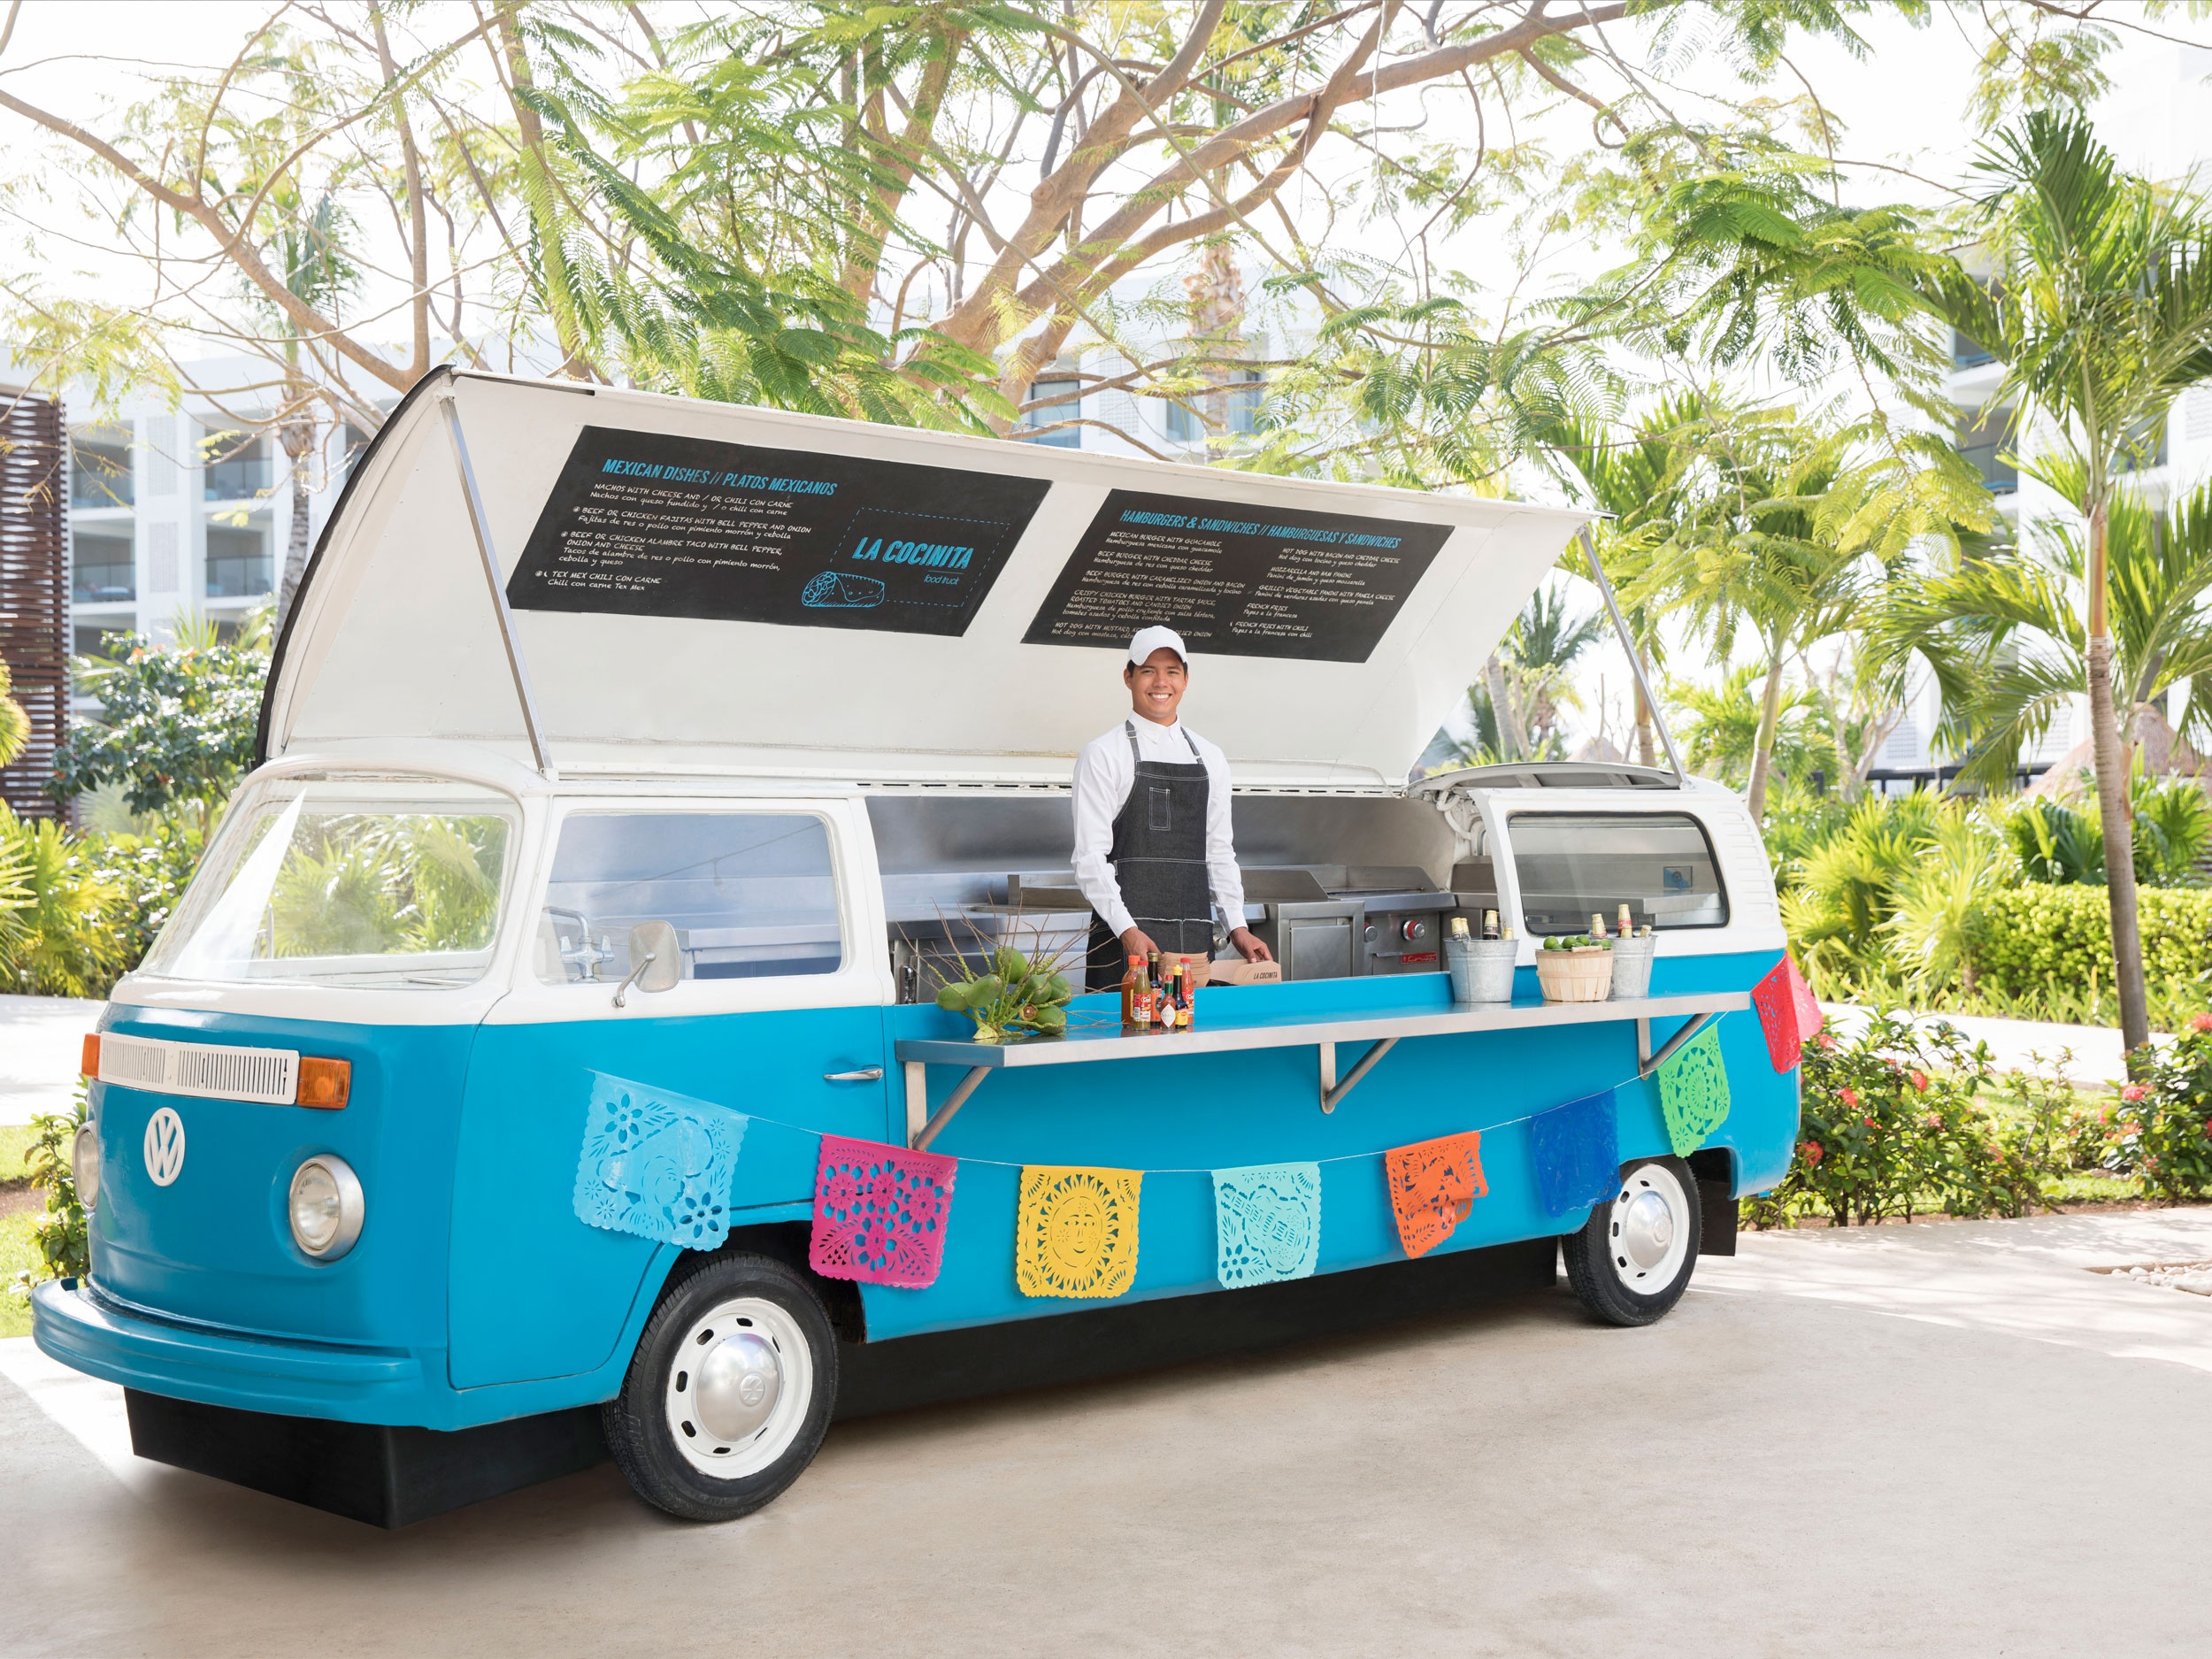 Cancun Food Truck